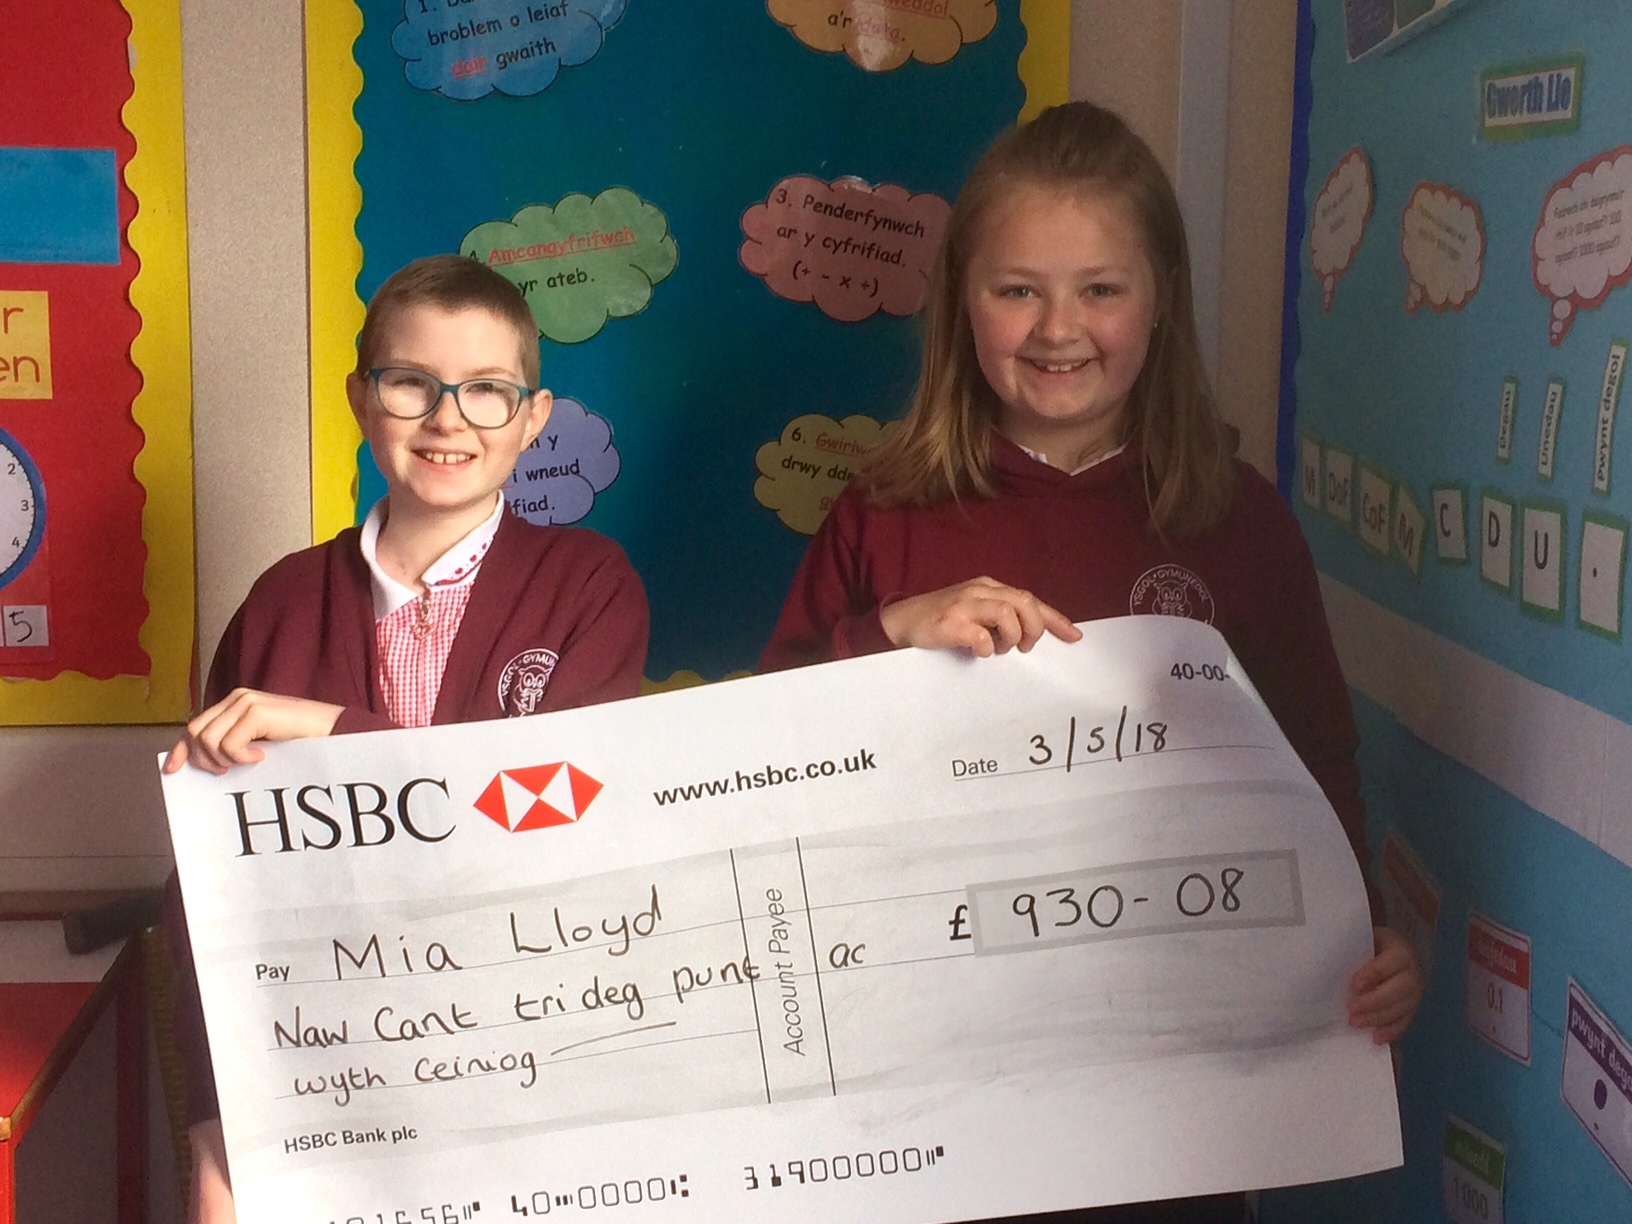 Cari Davies hands over a cheque to schoolfriend Mia Lloyd